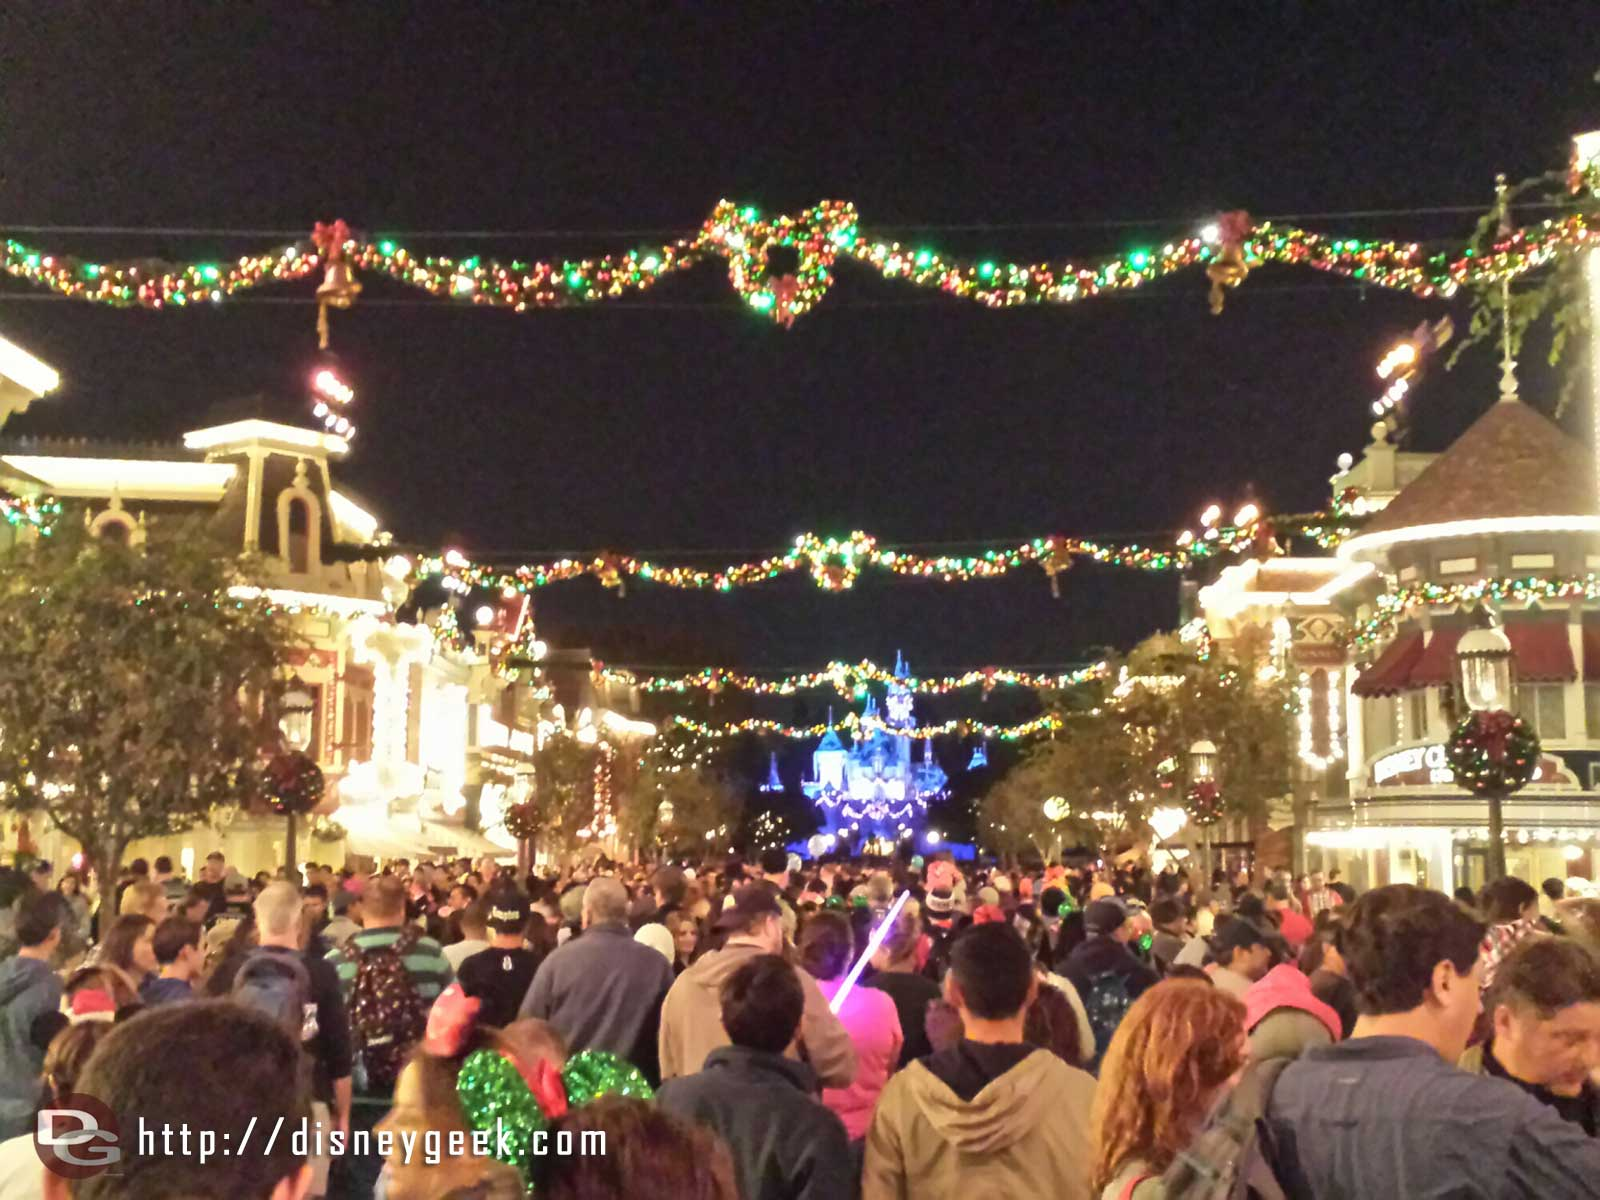 Waiting for Believe in Holiday Magic #Disneyland. They have played the high wind warning several times